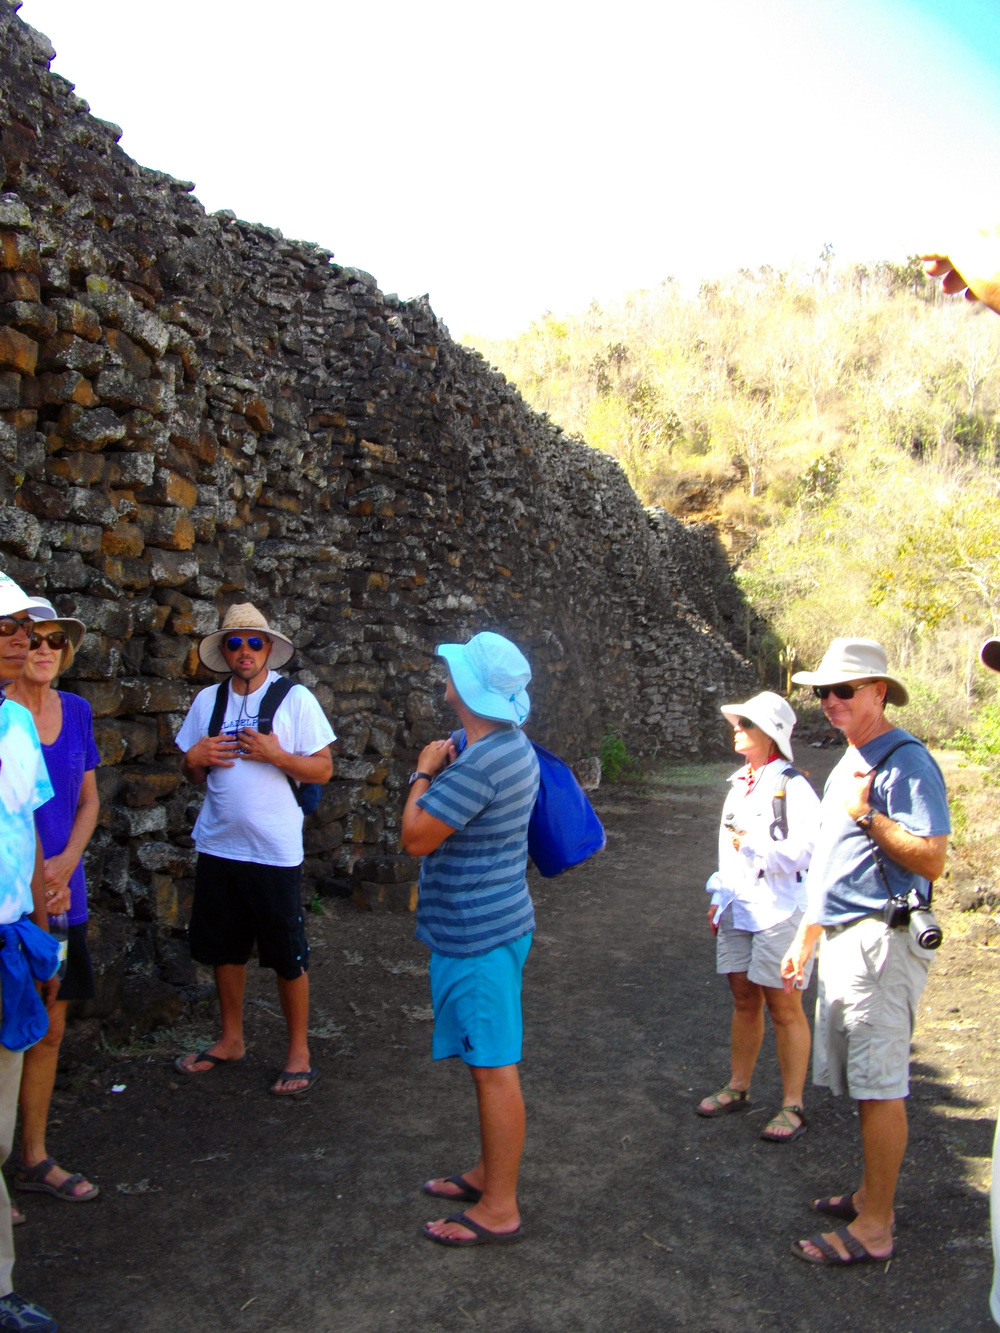 A visit to the Wall of tears, a remnant from the days when the Galapagos were used as a prison.